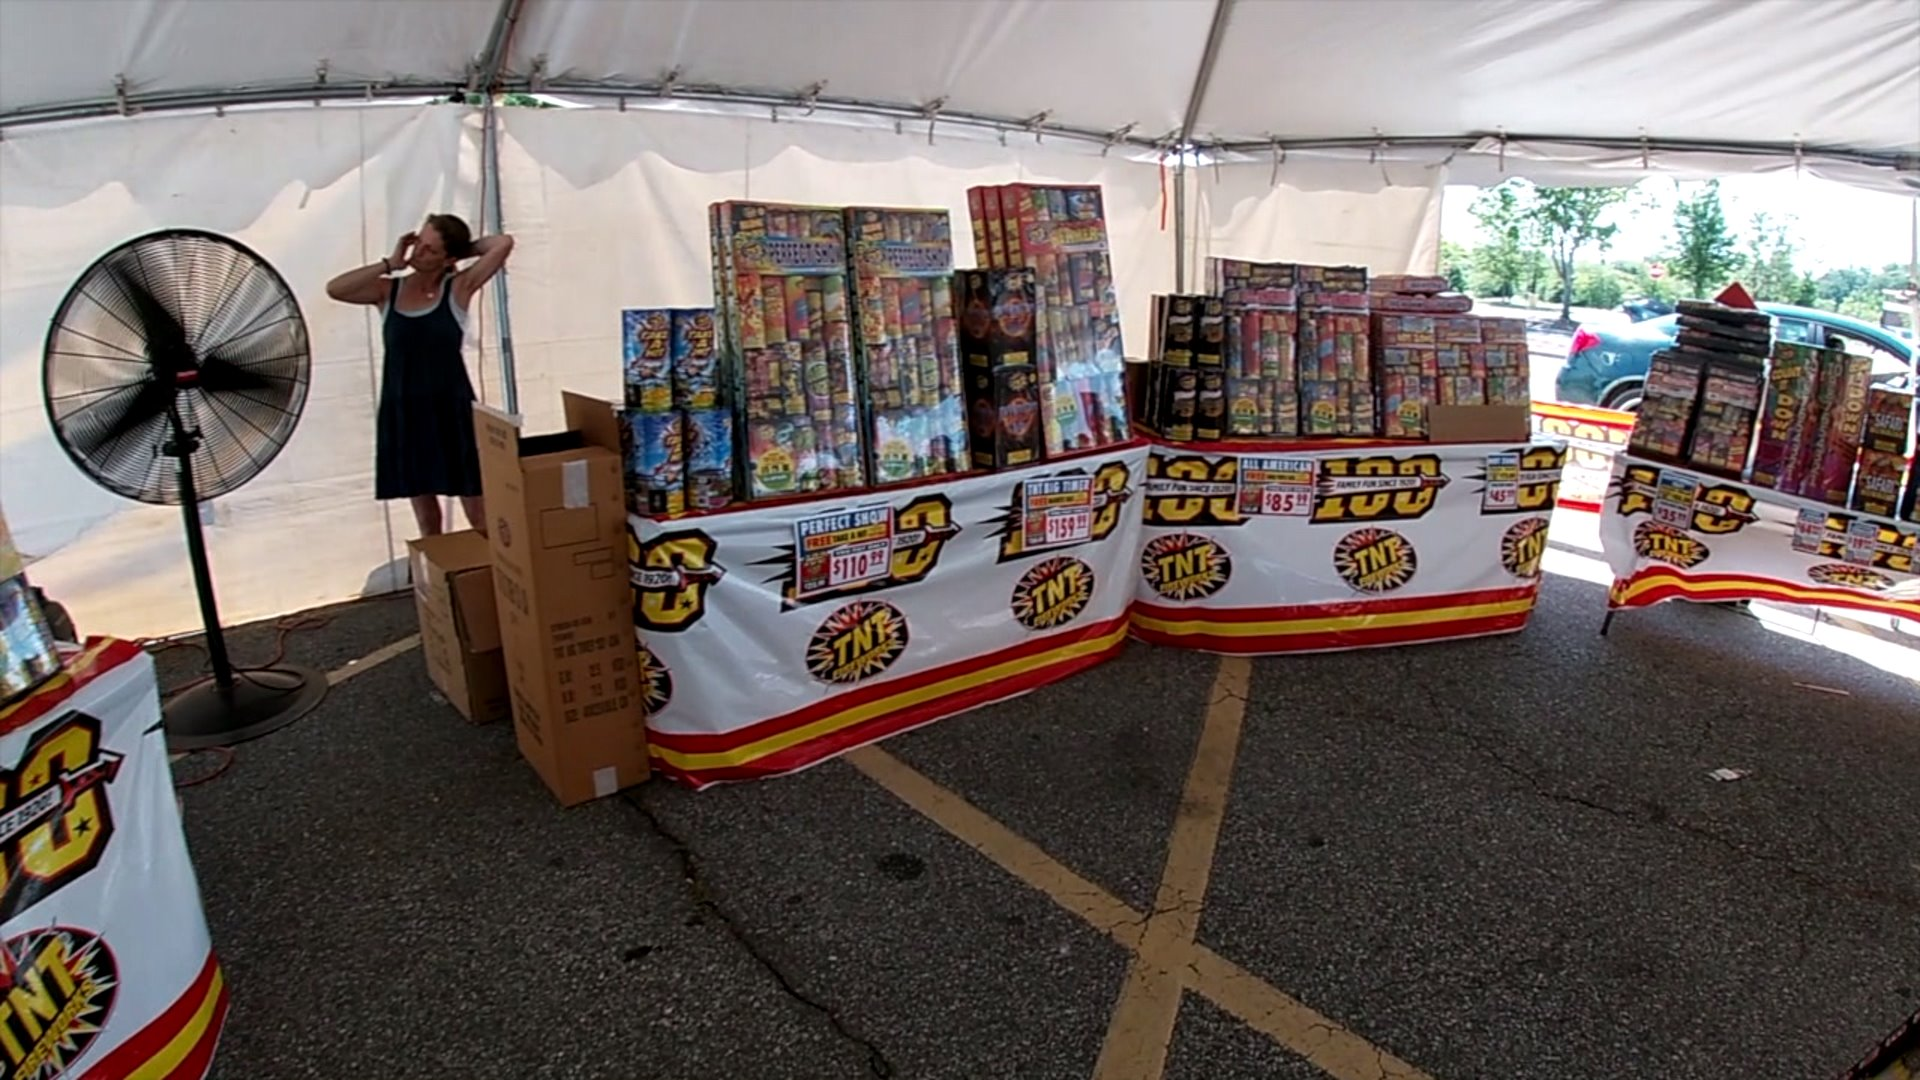 Greensboro fire officials share concerns over illegal fireworks during 4th of July weekend, offer alternatives